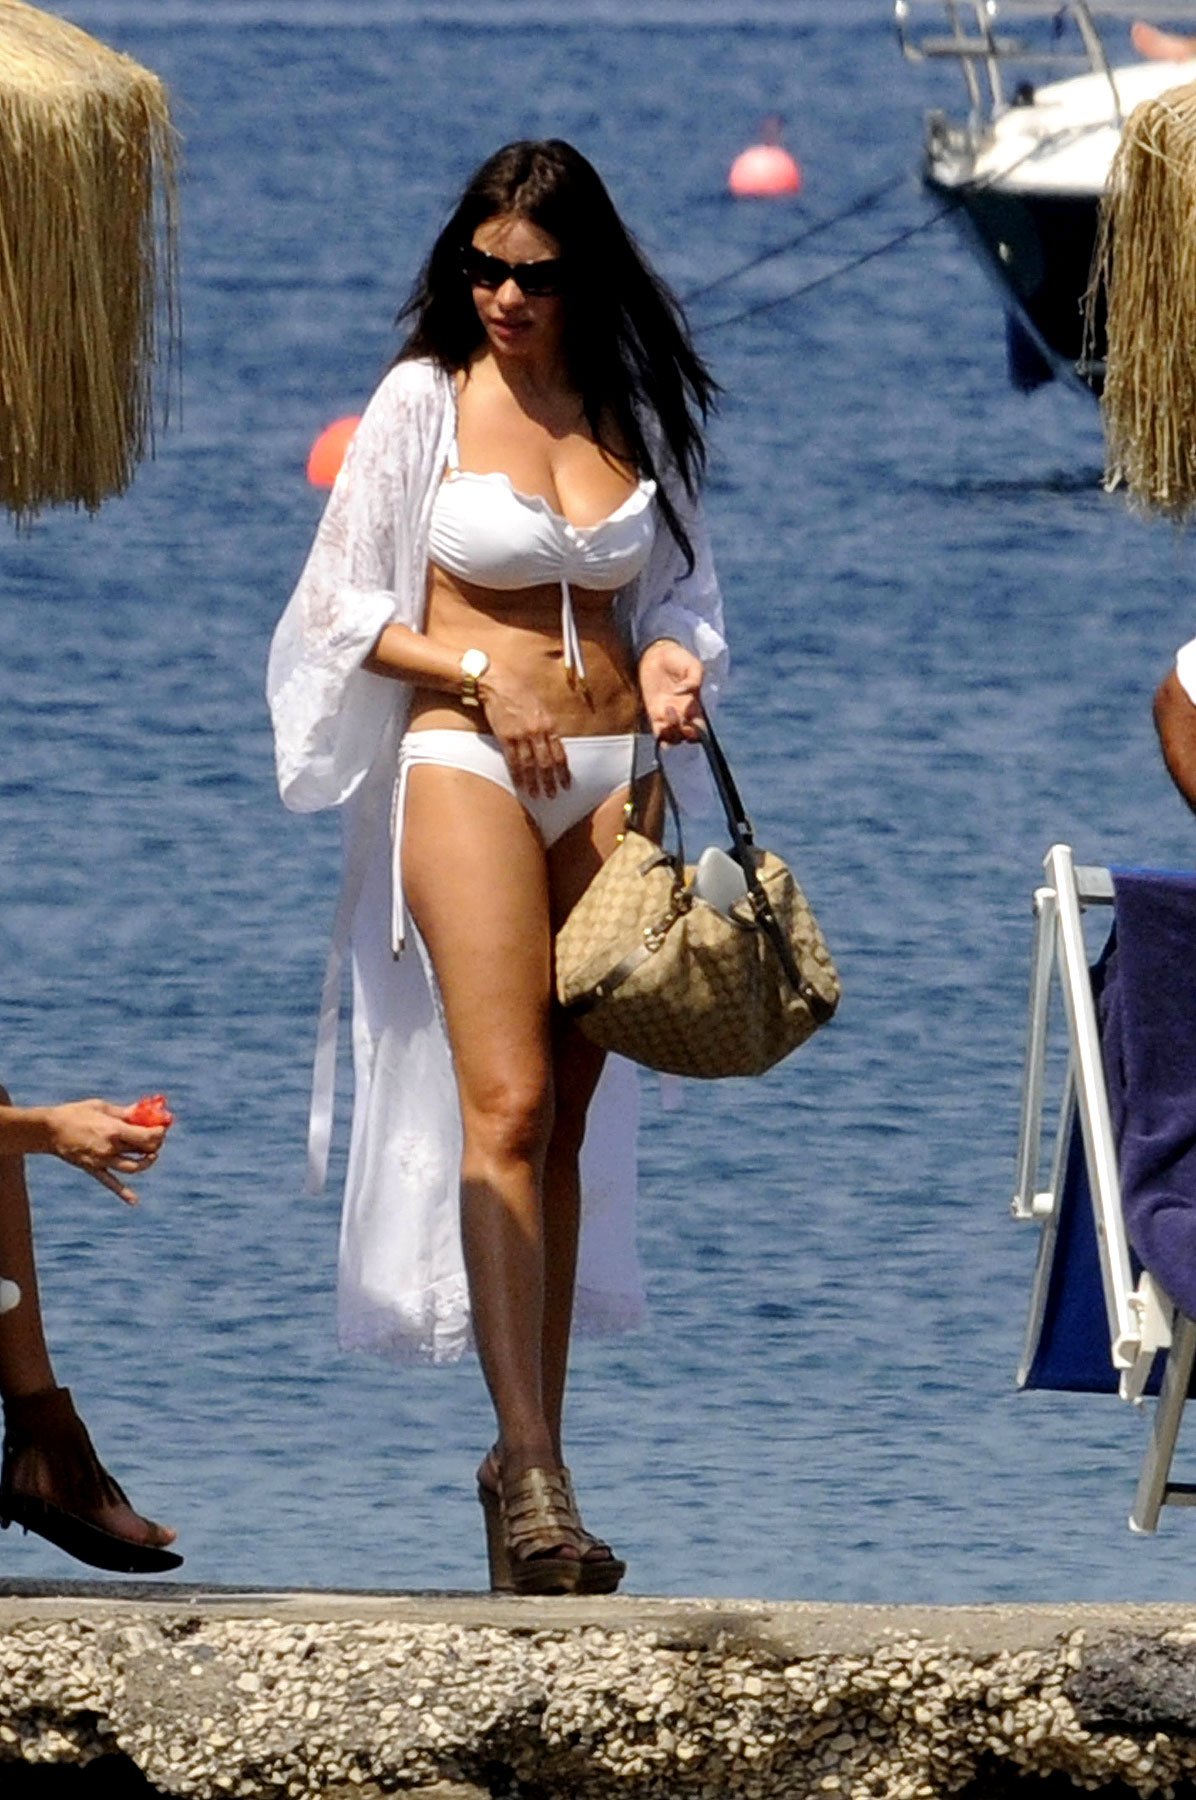 Sofia Vergara's Teeny White Bikini (PHOTOS)